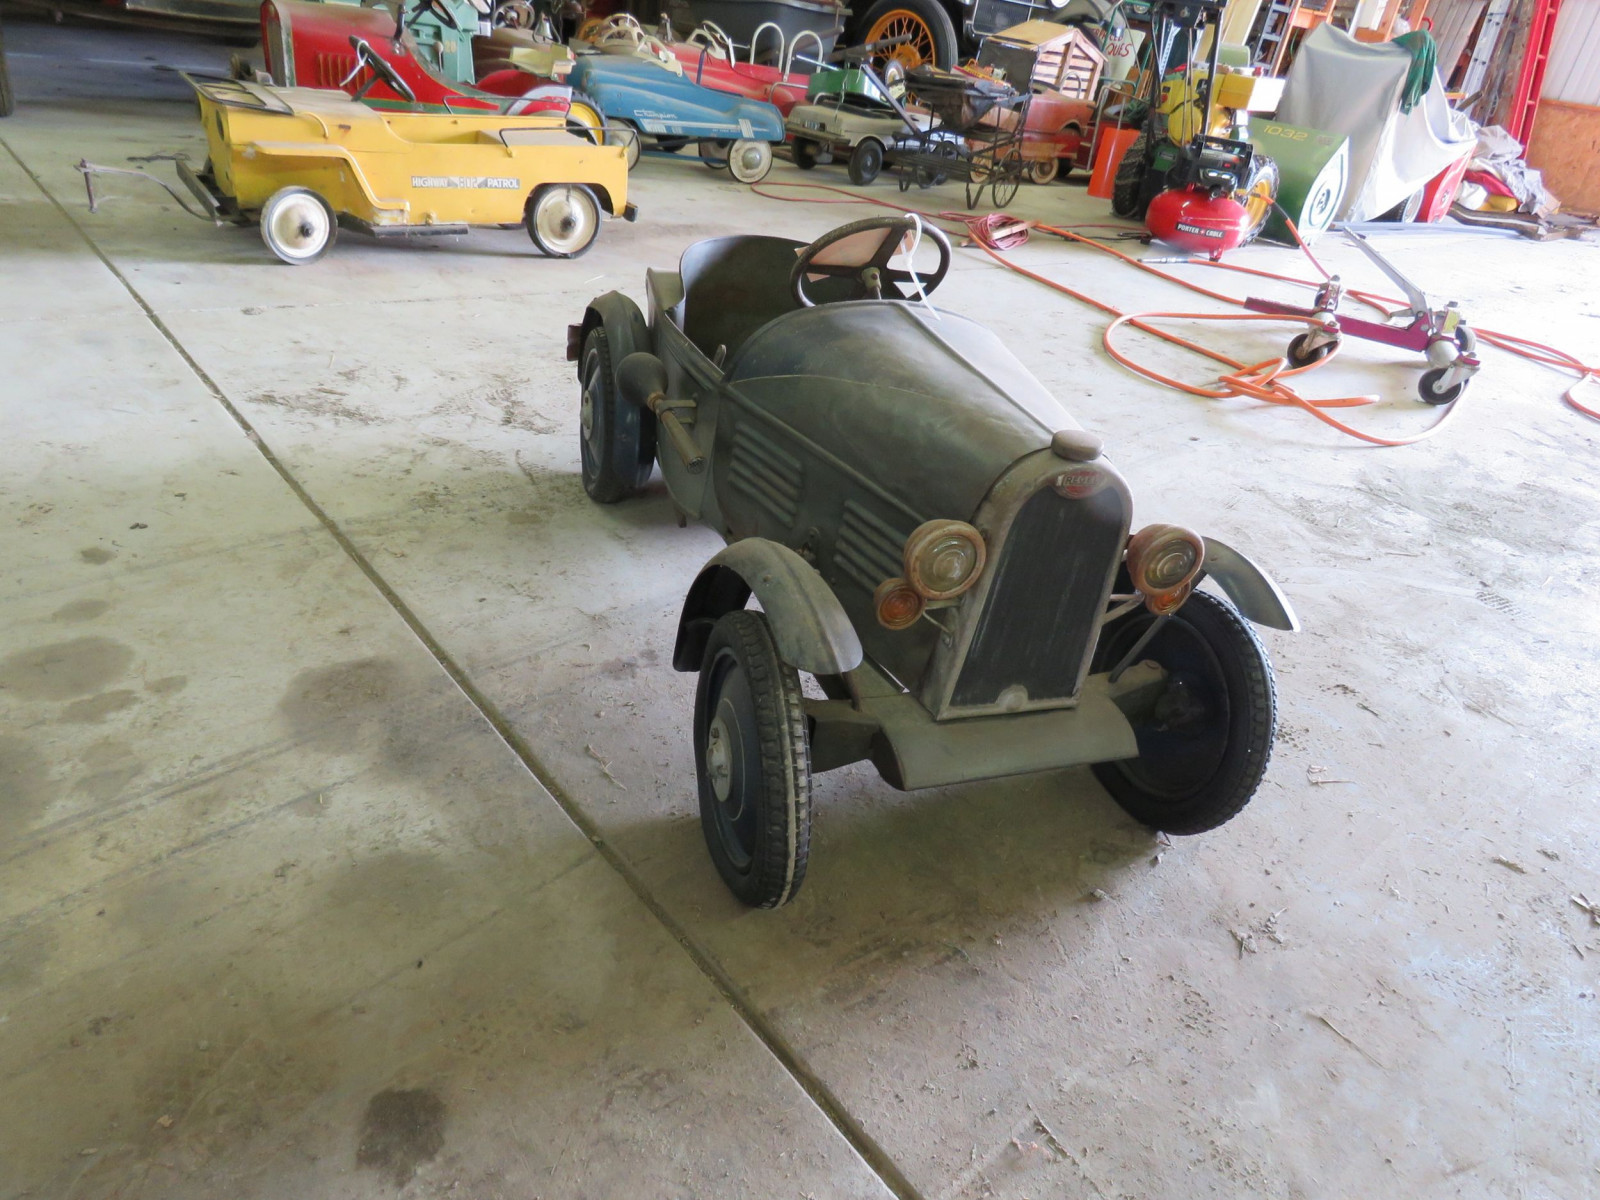 Vintage Regal Cycles Roadster Pedal Car - Image 3